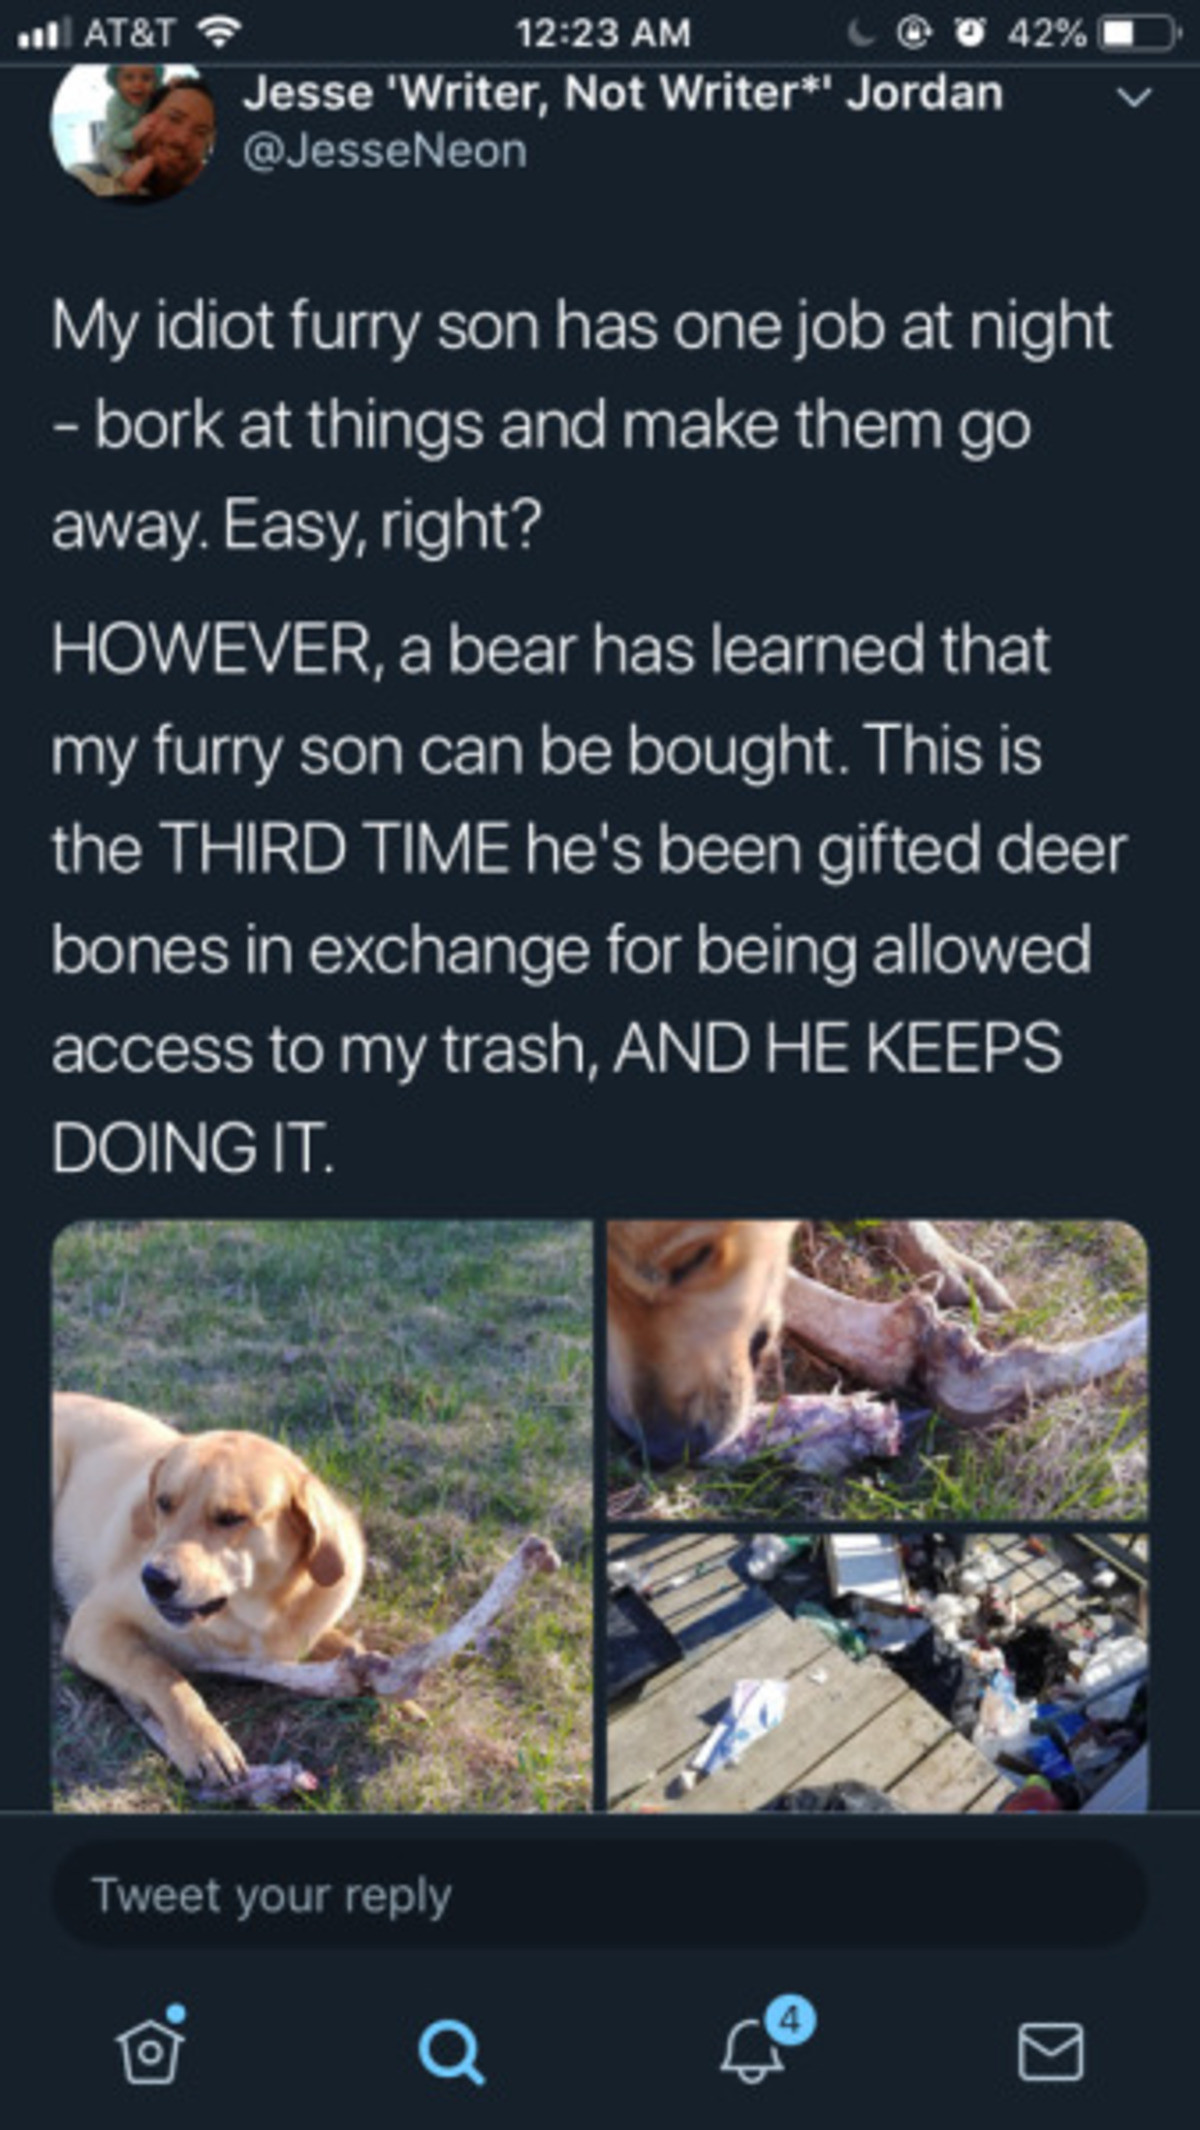 Idiot furry son. .. i thought he was talking about a real furry human person, then i figured out it was about a dog. then i realized the bear has learned of bargaining and will soo